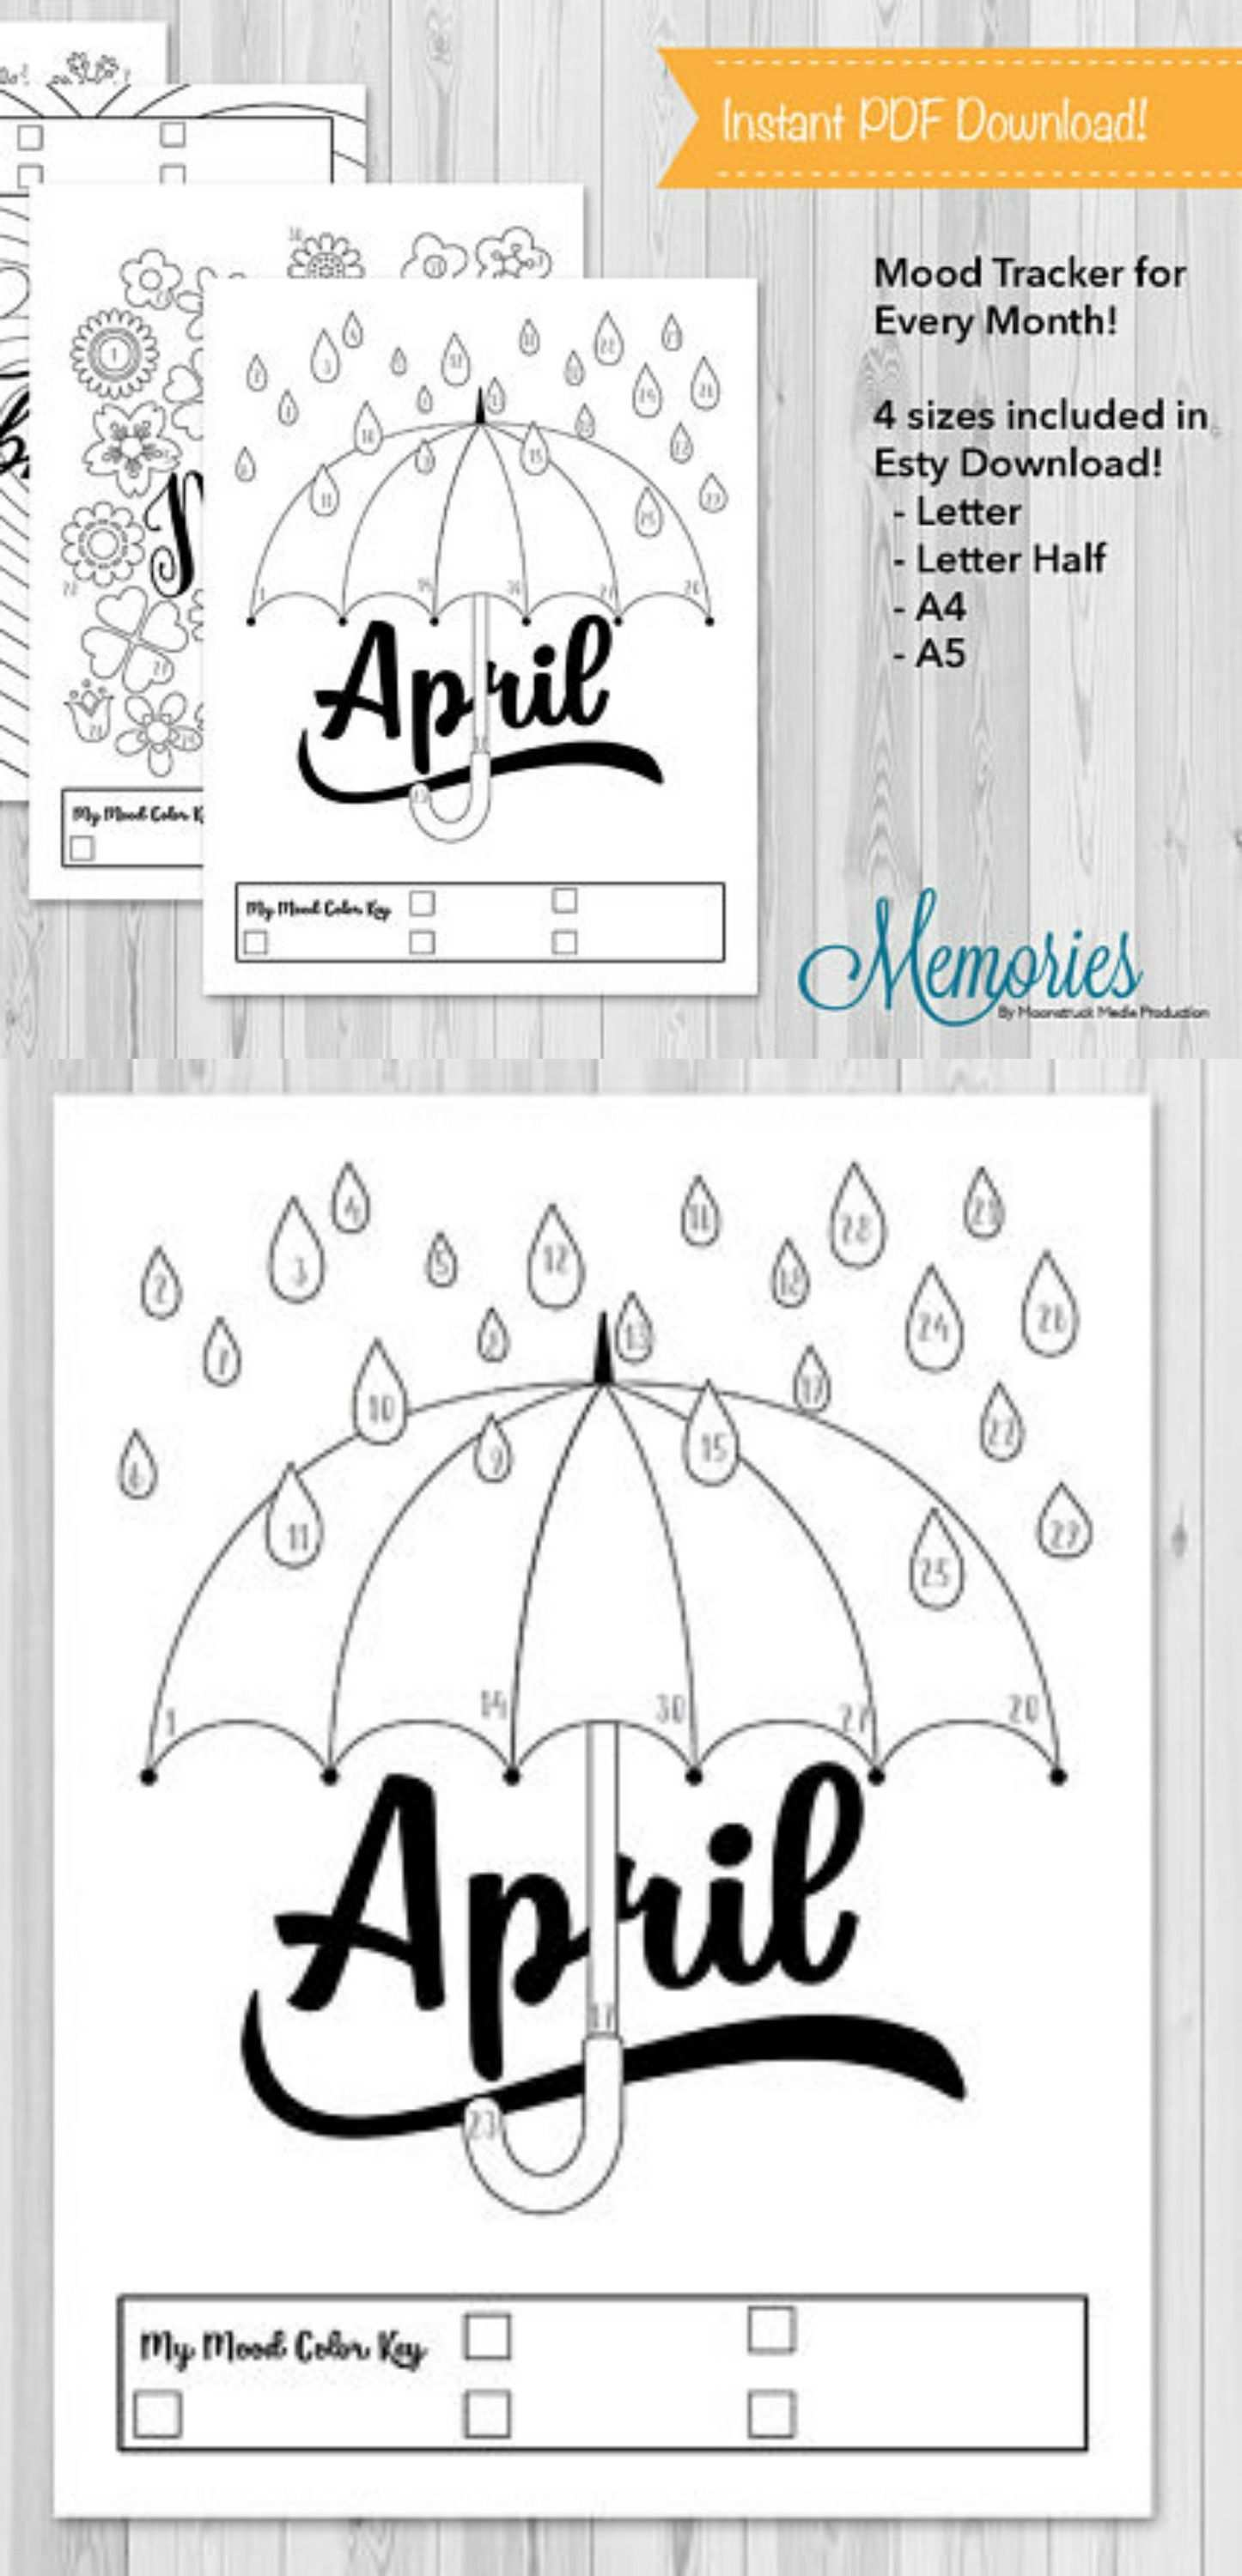 Monthly Mood Tracker Printables For Your Bullet Journal Or Planner Mood Bujo Affiliate Tracki Bullet Journal Mood Bullet Journal Printables Bullet Journal